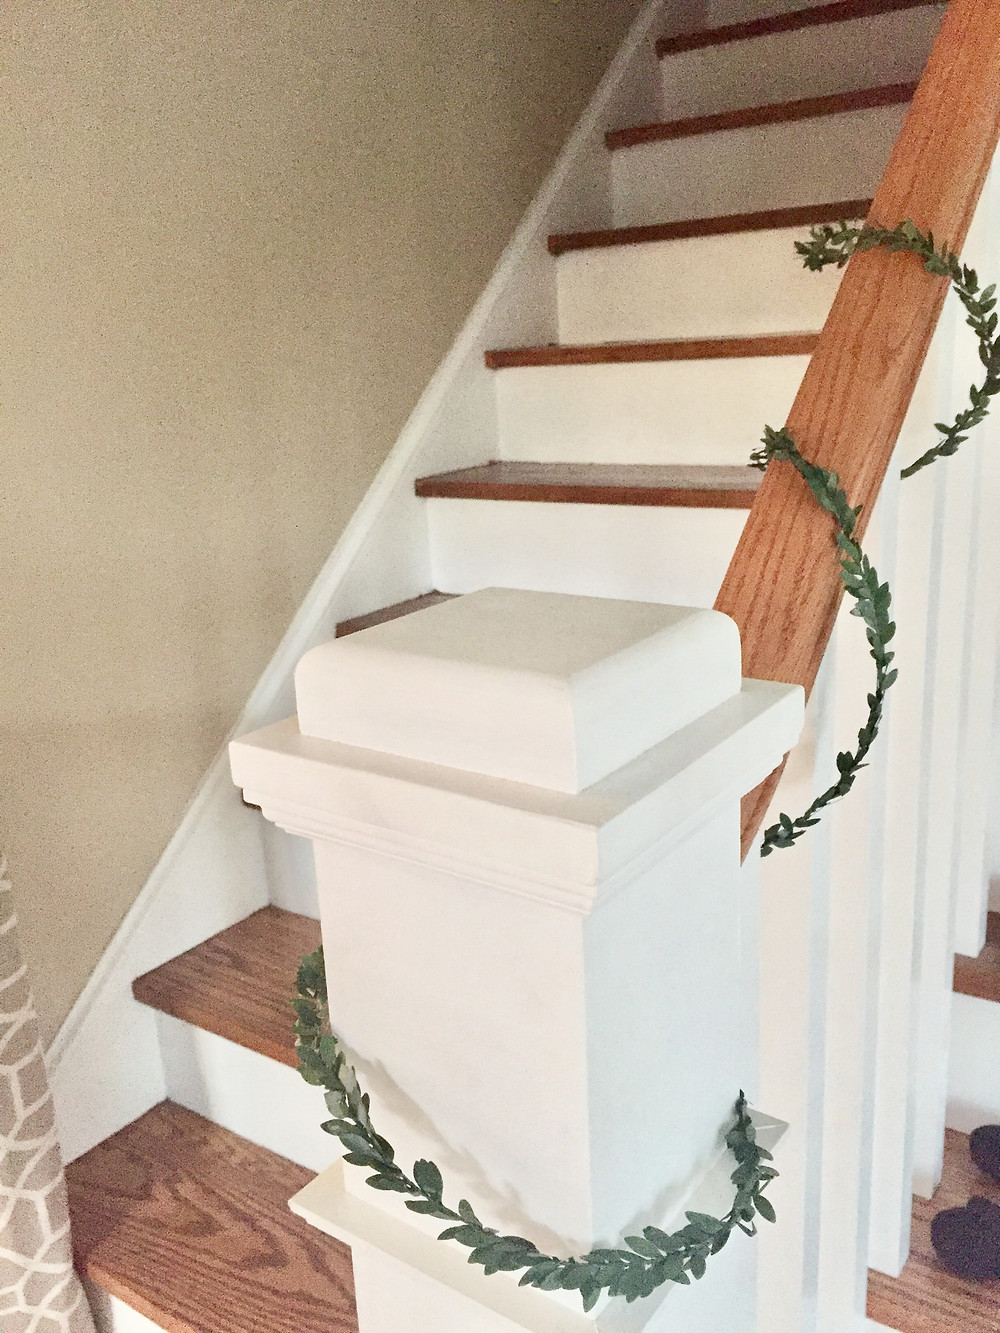 Green holiday Christmas garland banister